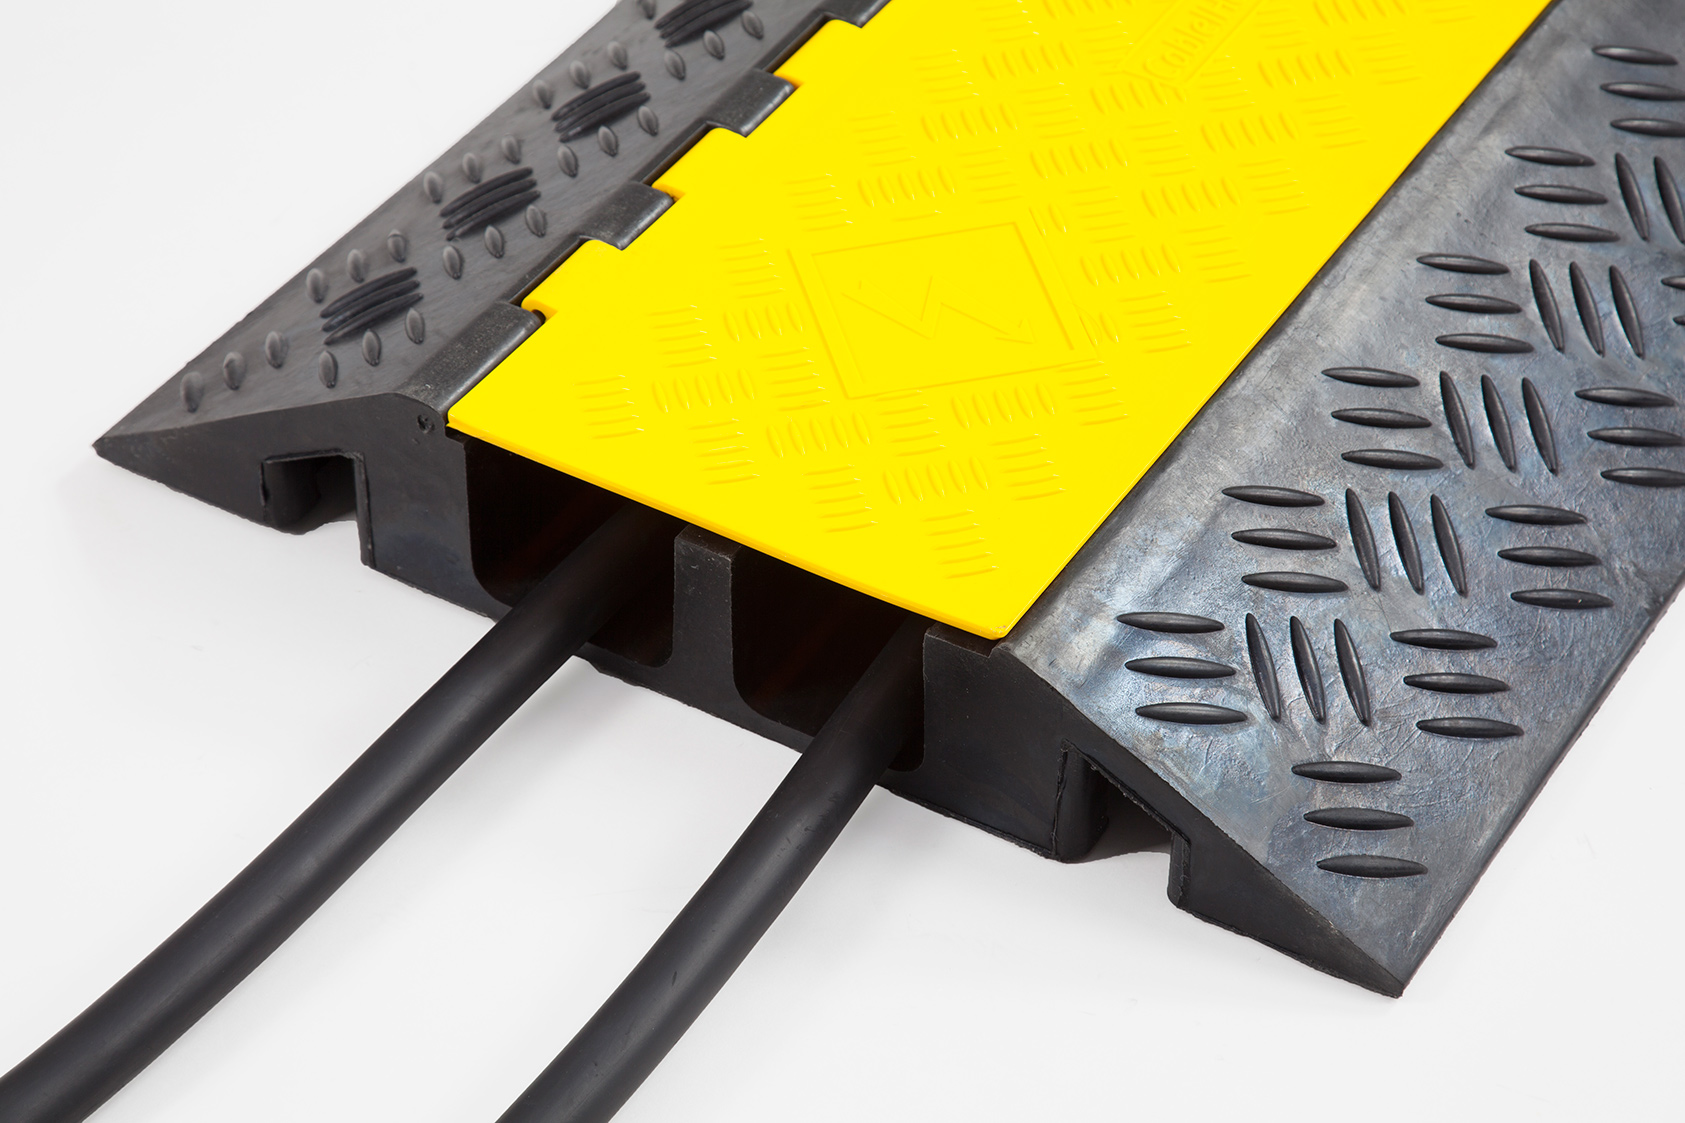 Cable Covers, Cable Protectors & Ramps - The Ramp People